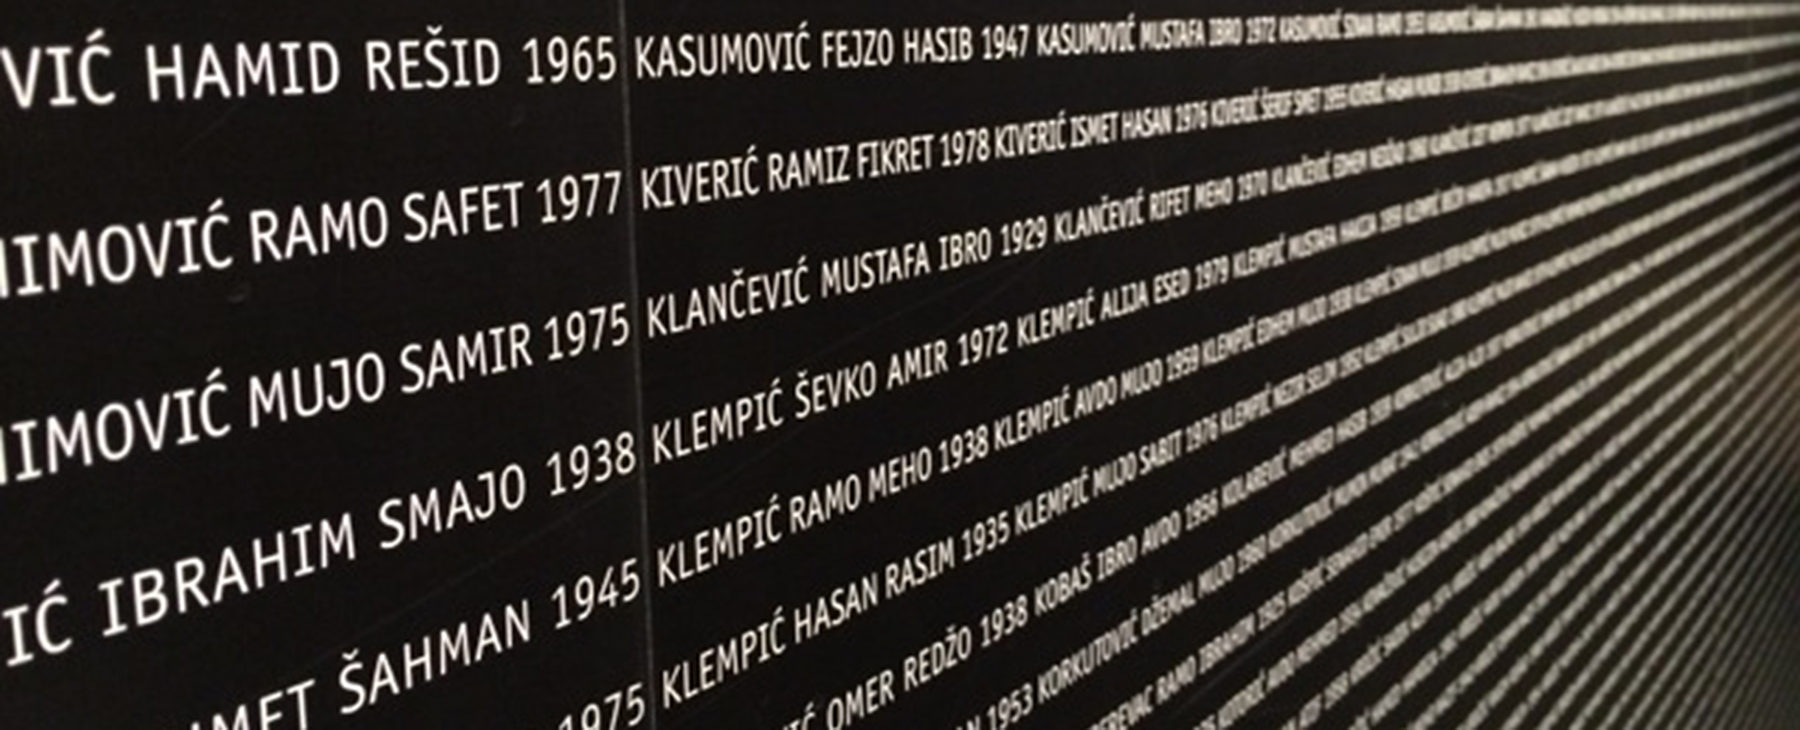 Denying wartime horrors is now a criminal offence in BiH